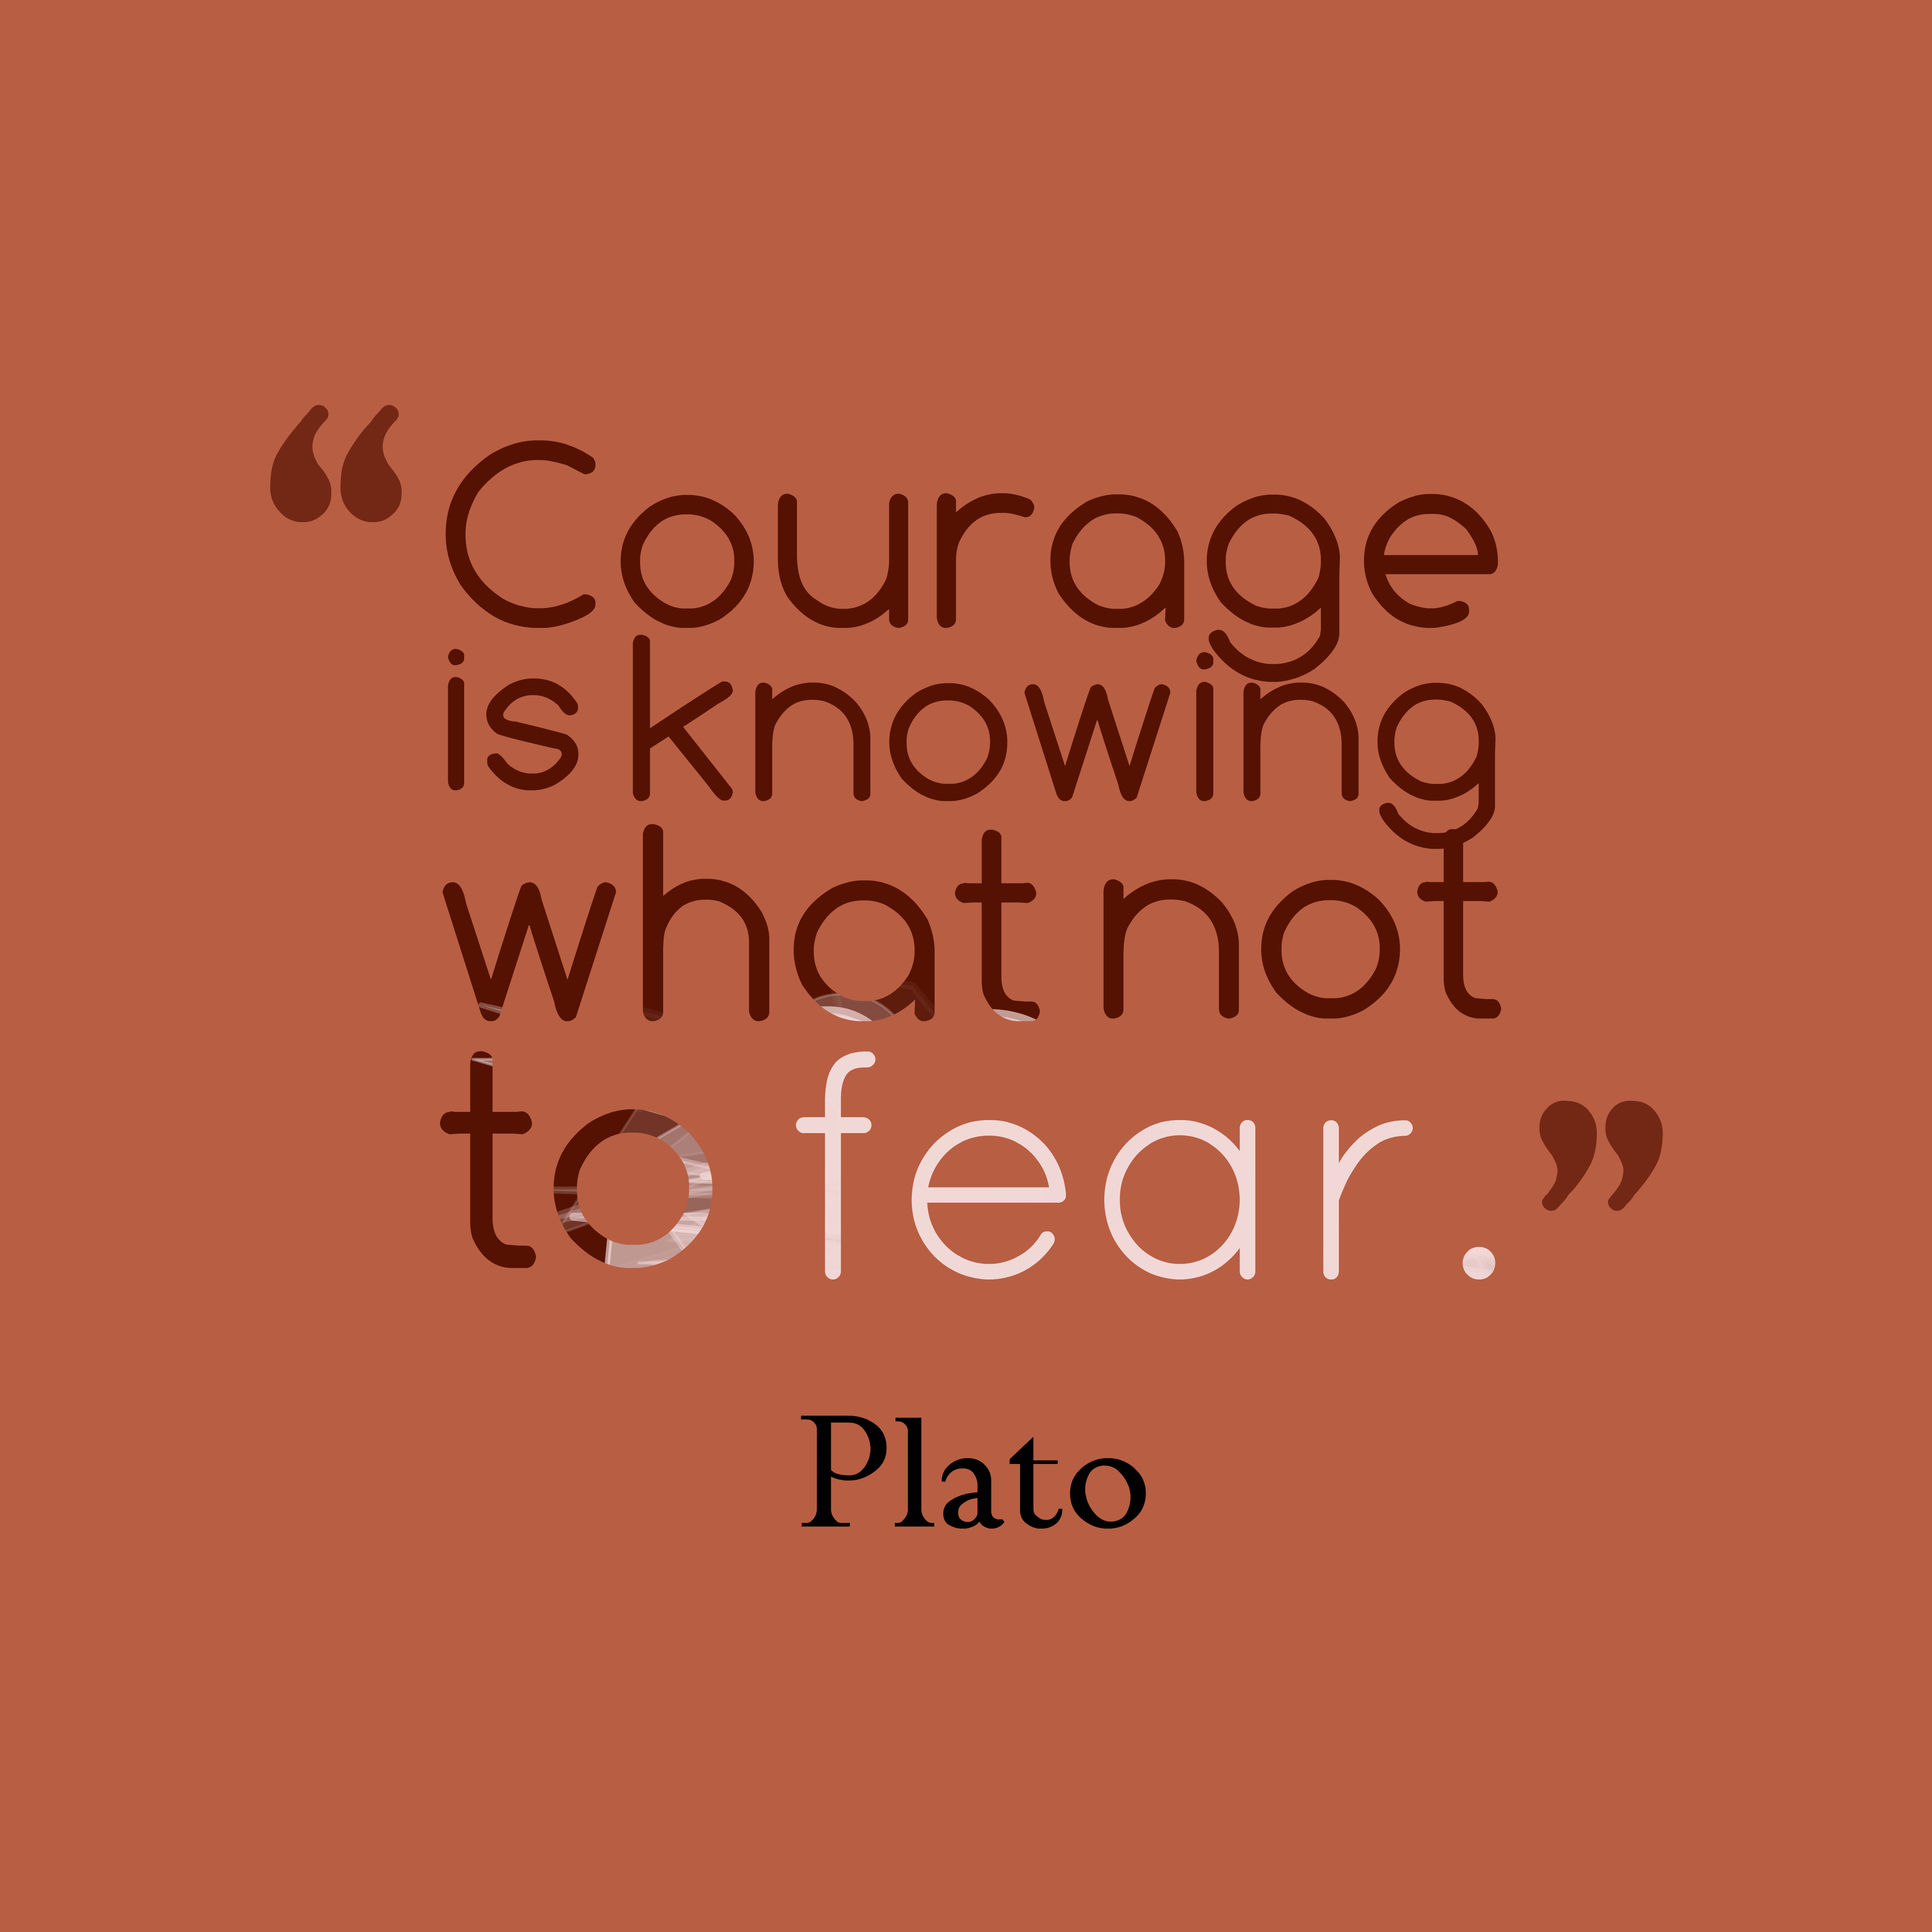 Quotes image of Courage is knowing what not to fear.